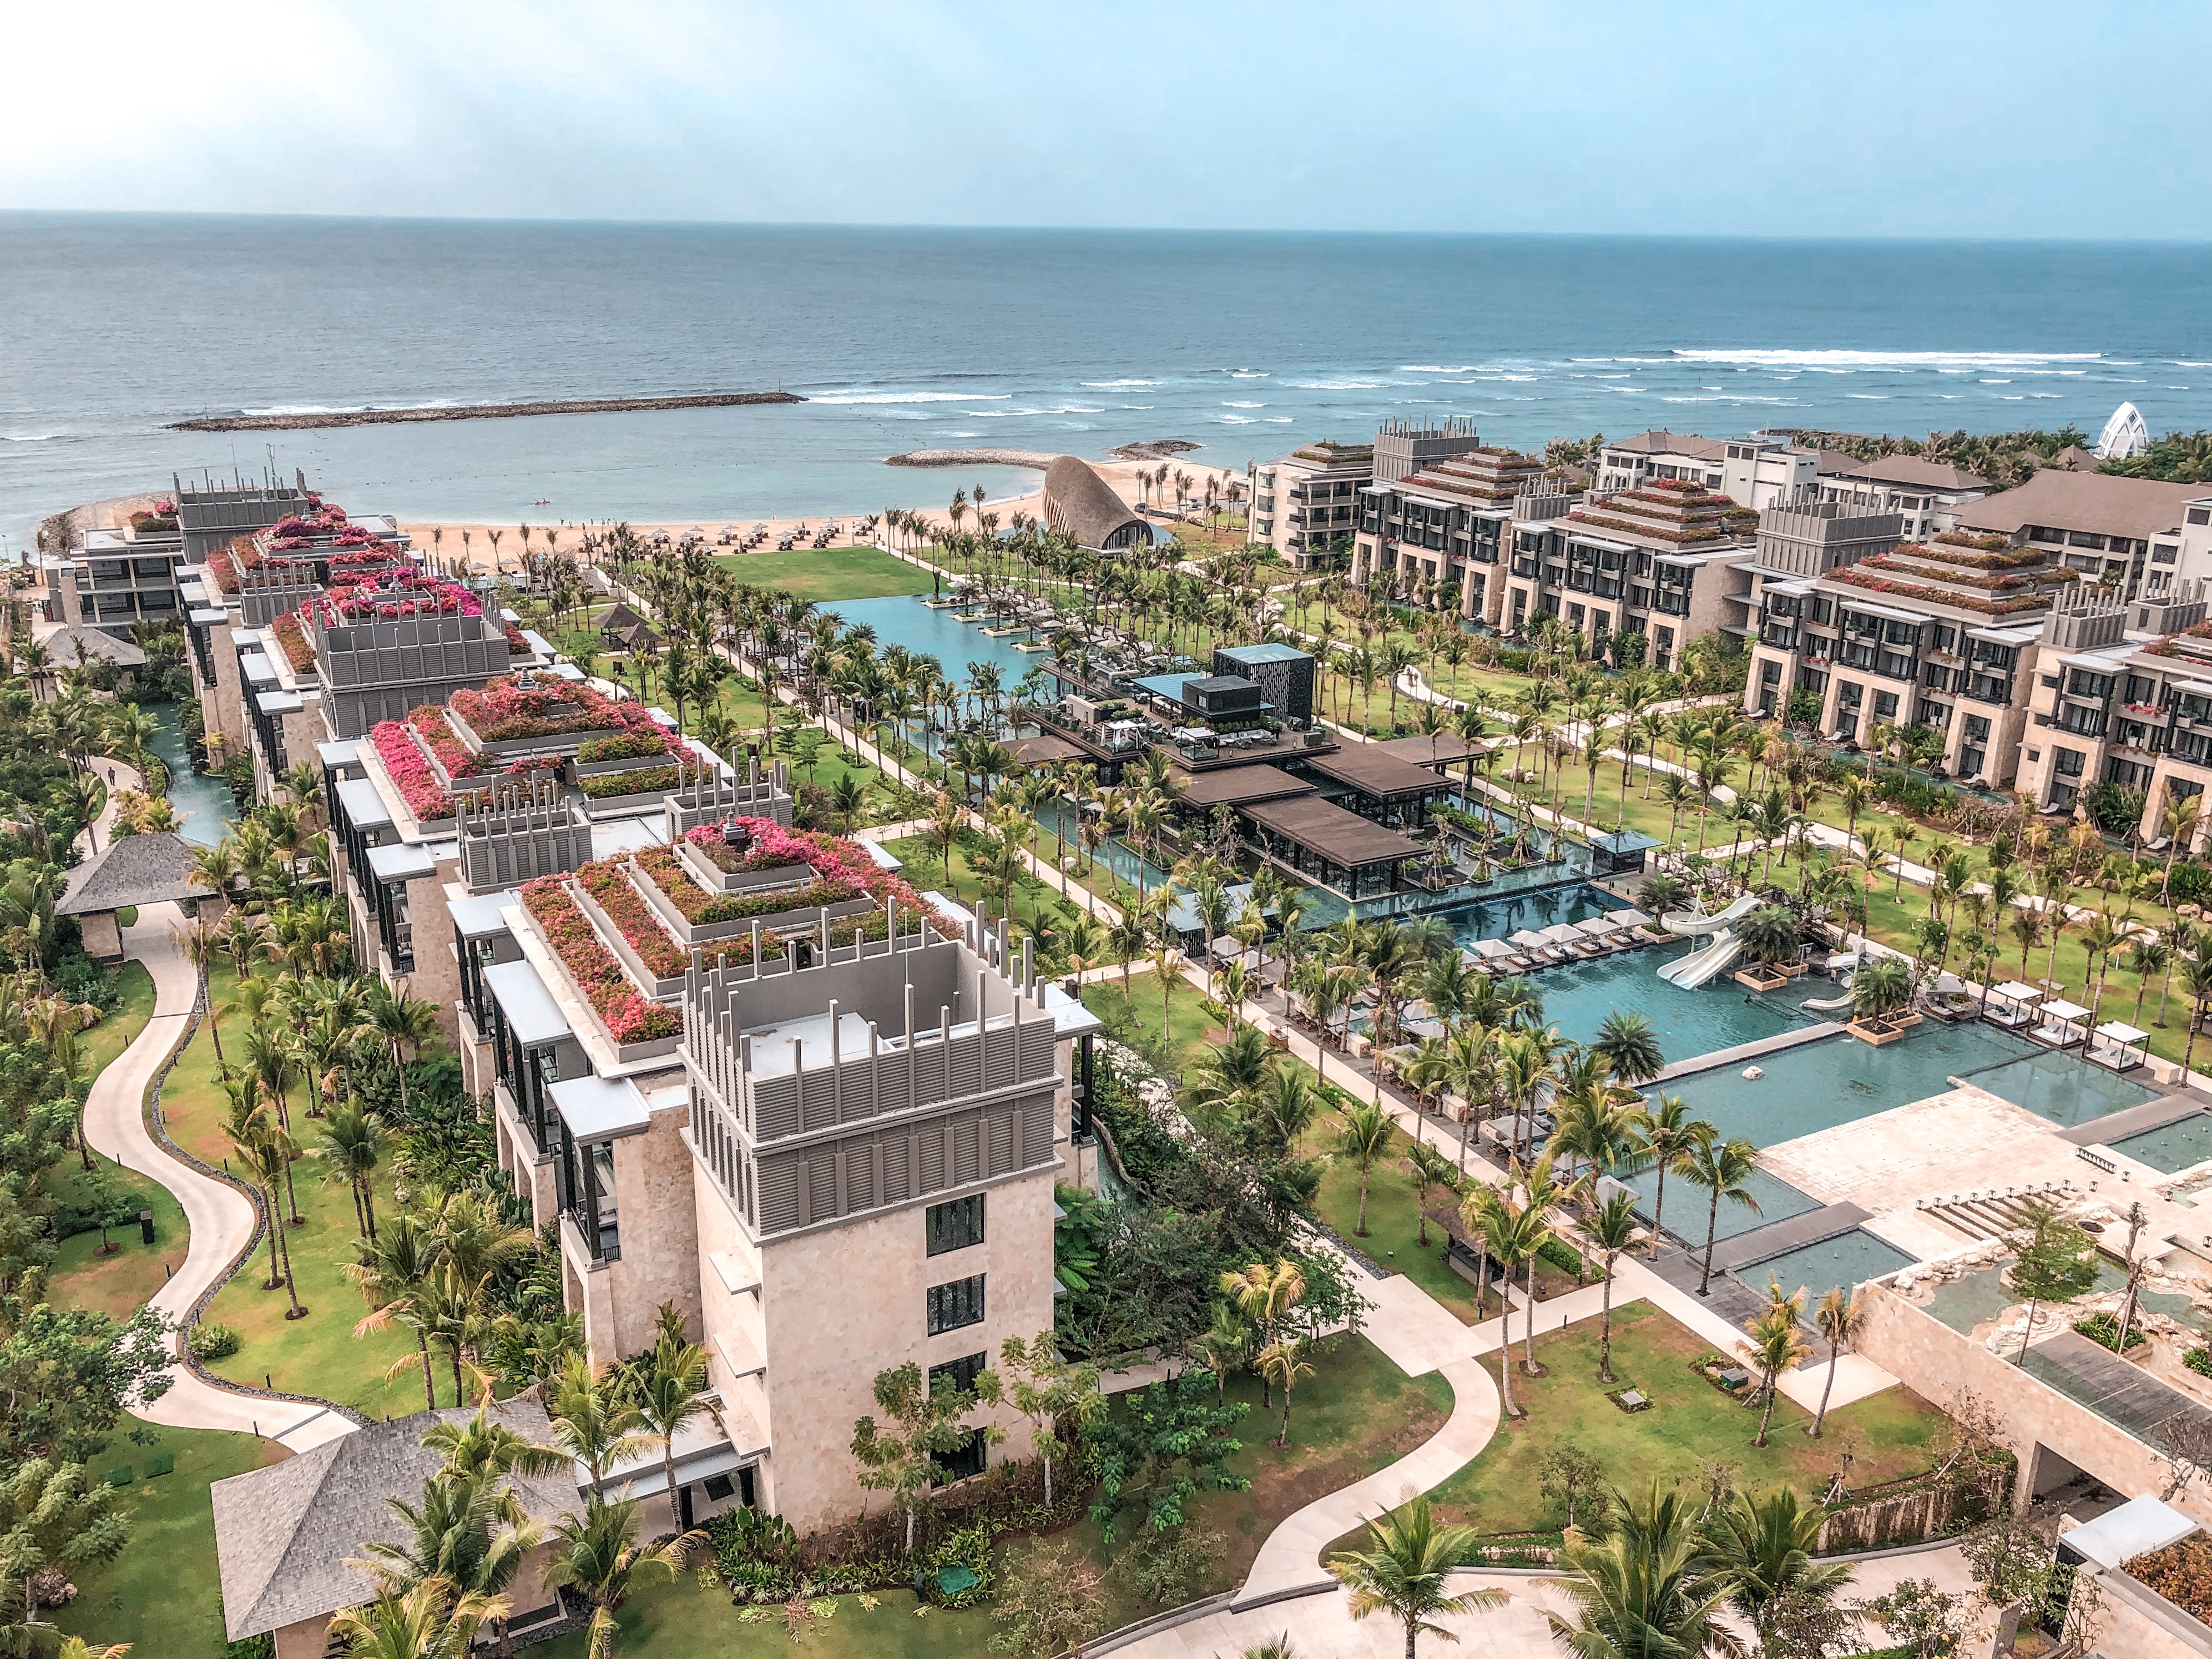 Luxury Stay At The Apurva Kempinski Bali Nusa Dua Giddy Guest